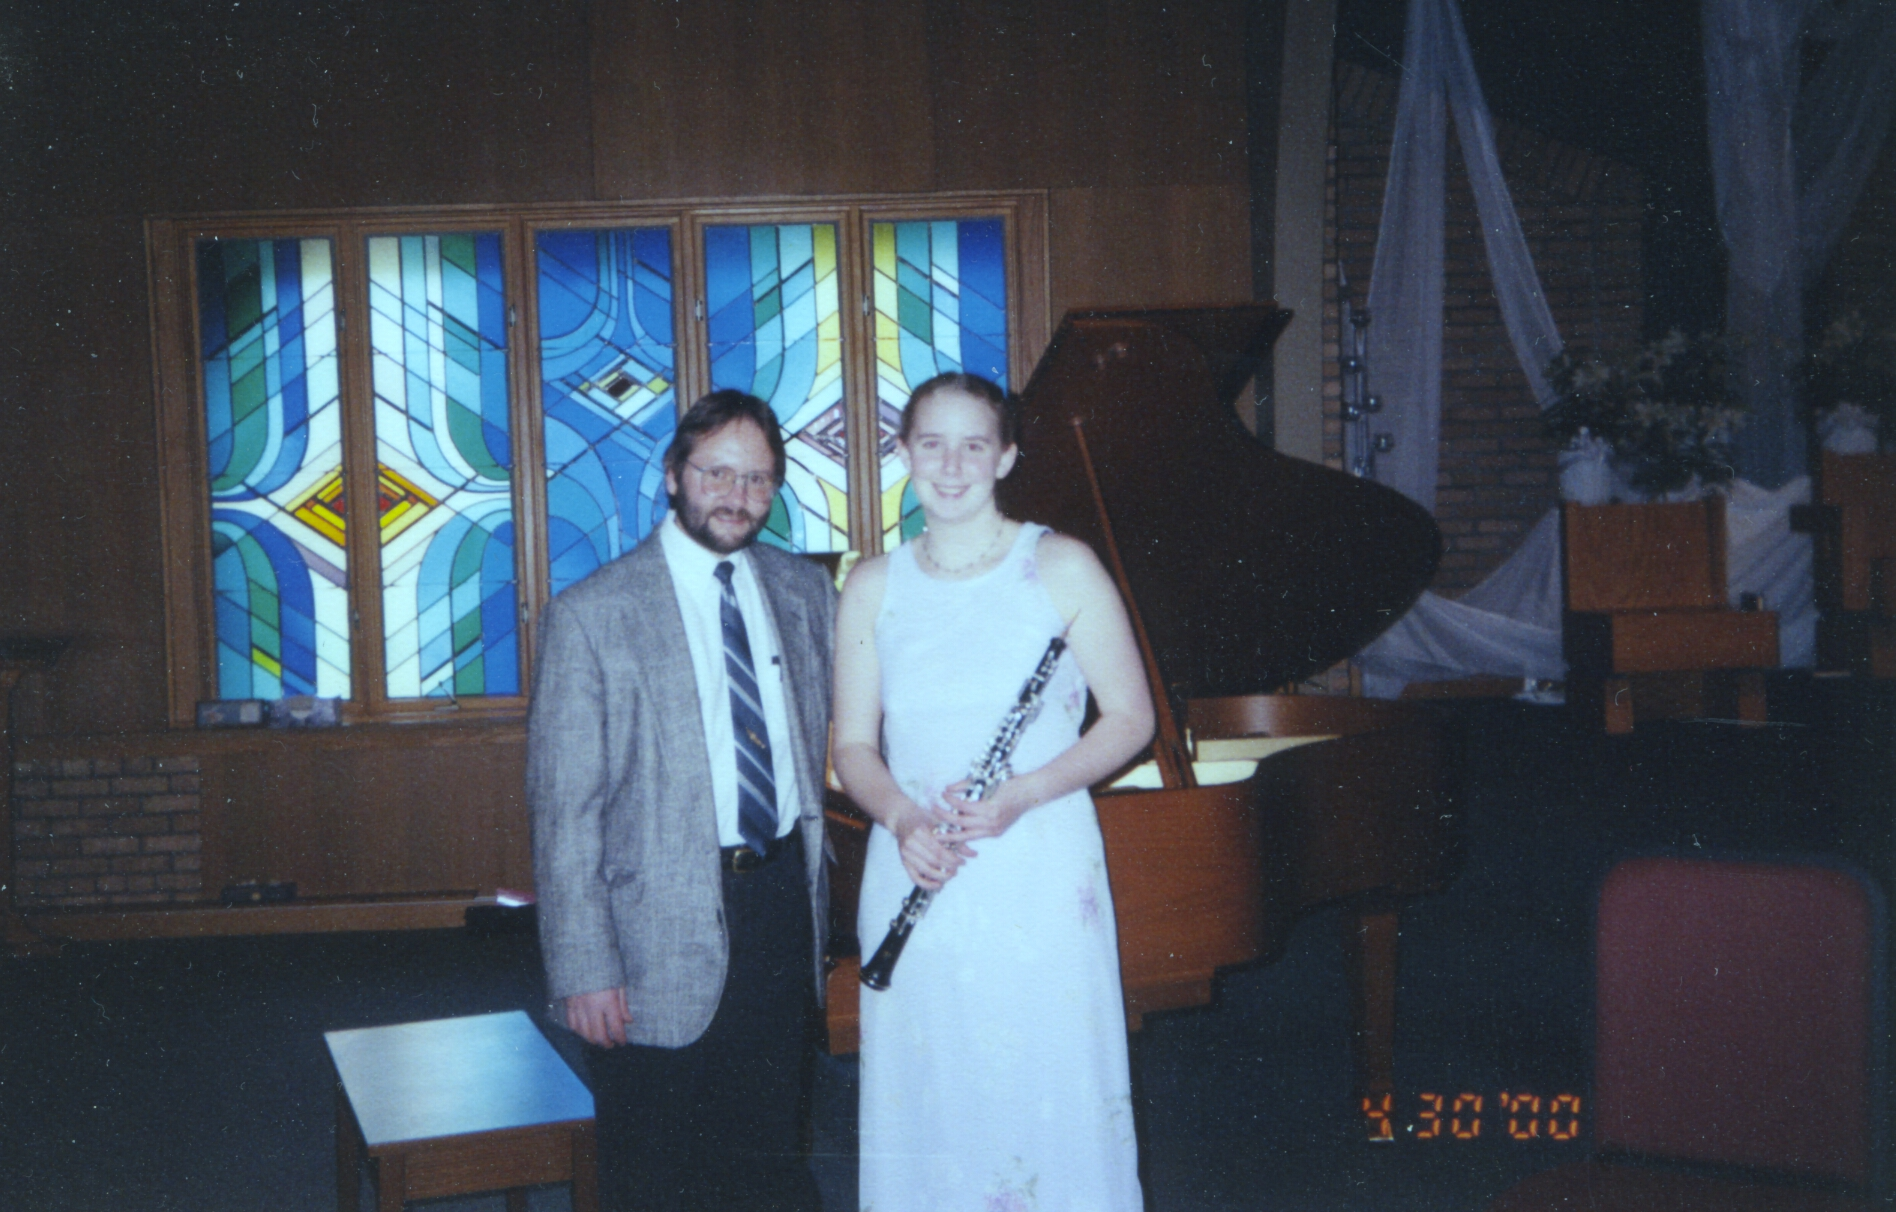 Bruce Clark with an oboe student